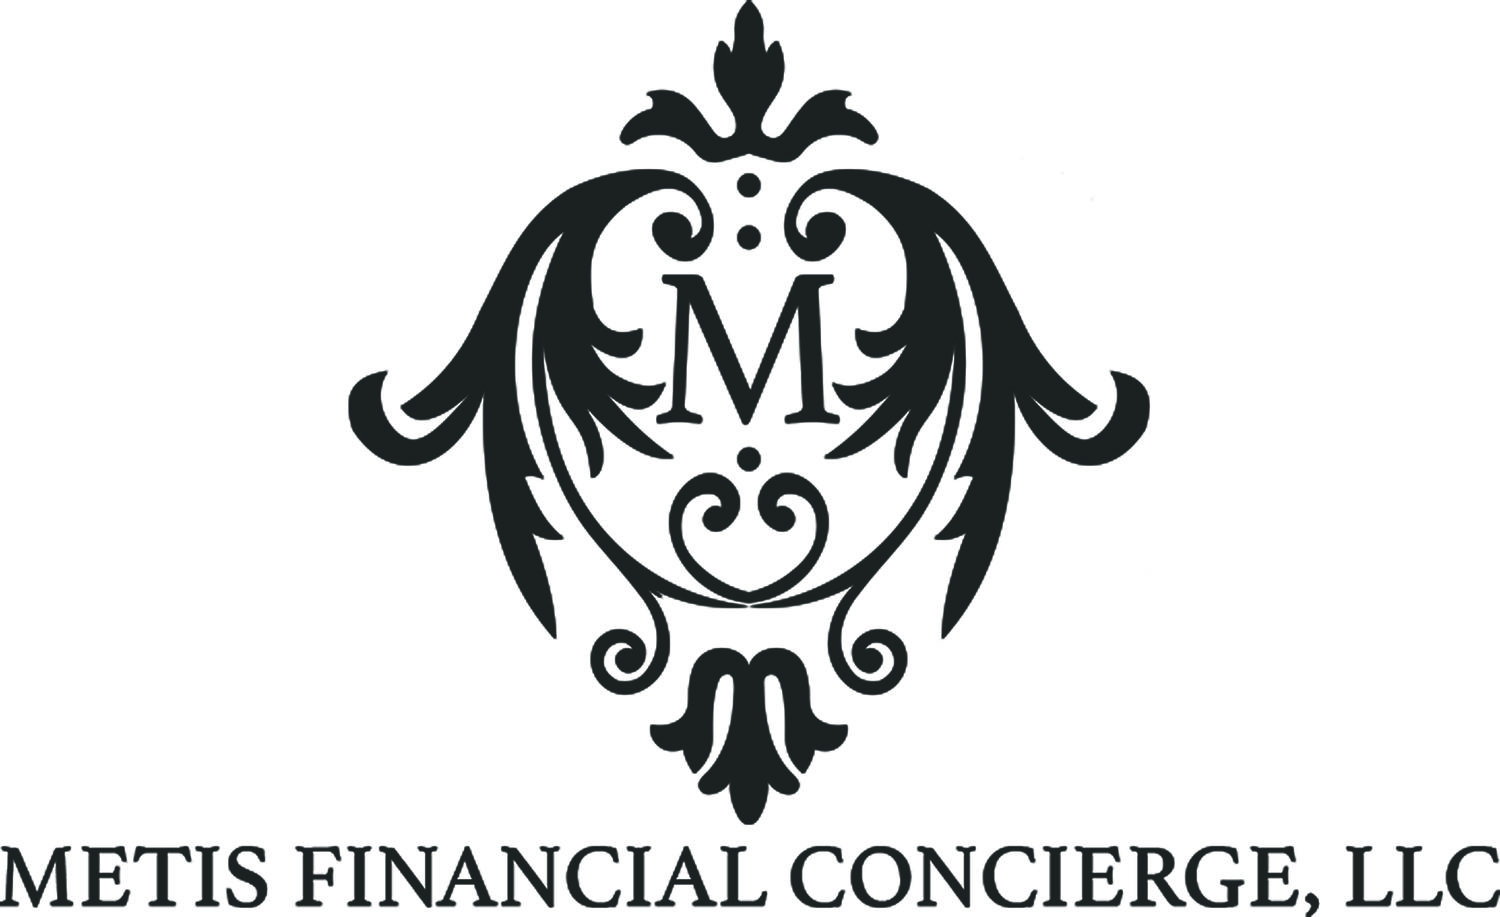 METIS FINANCIAL CONCIERGE, LLC